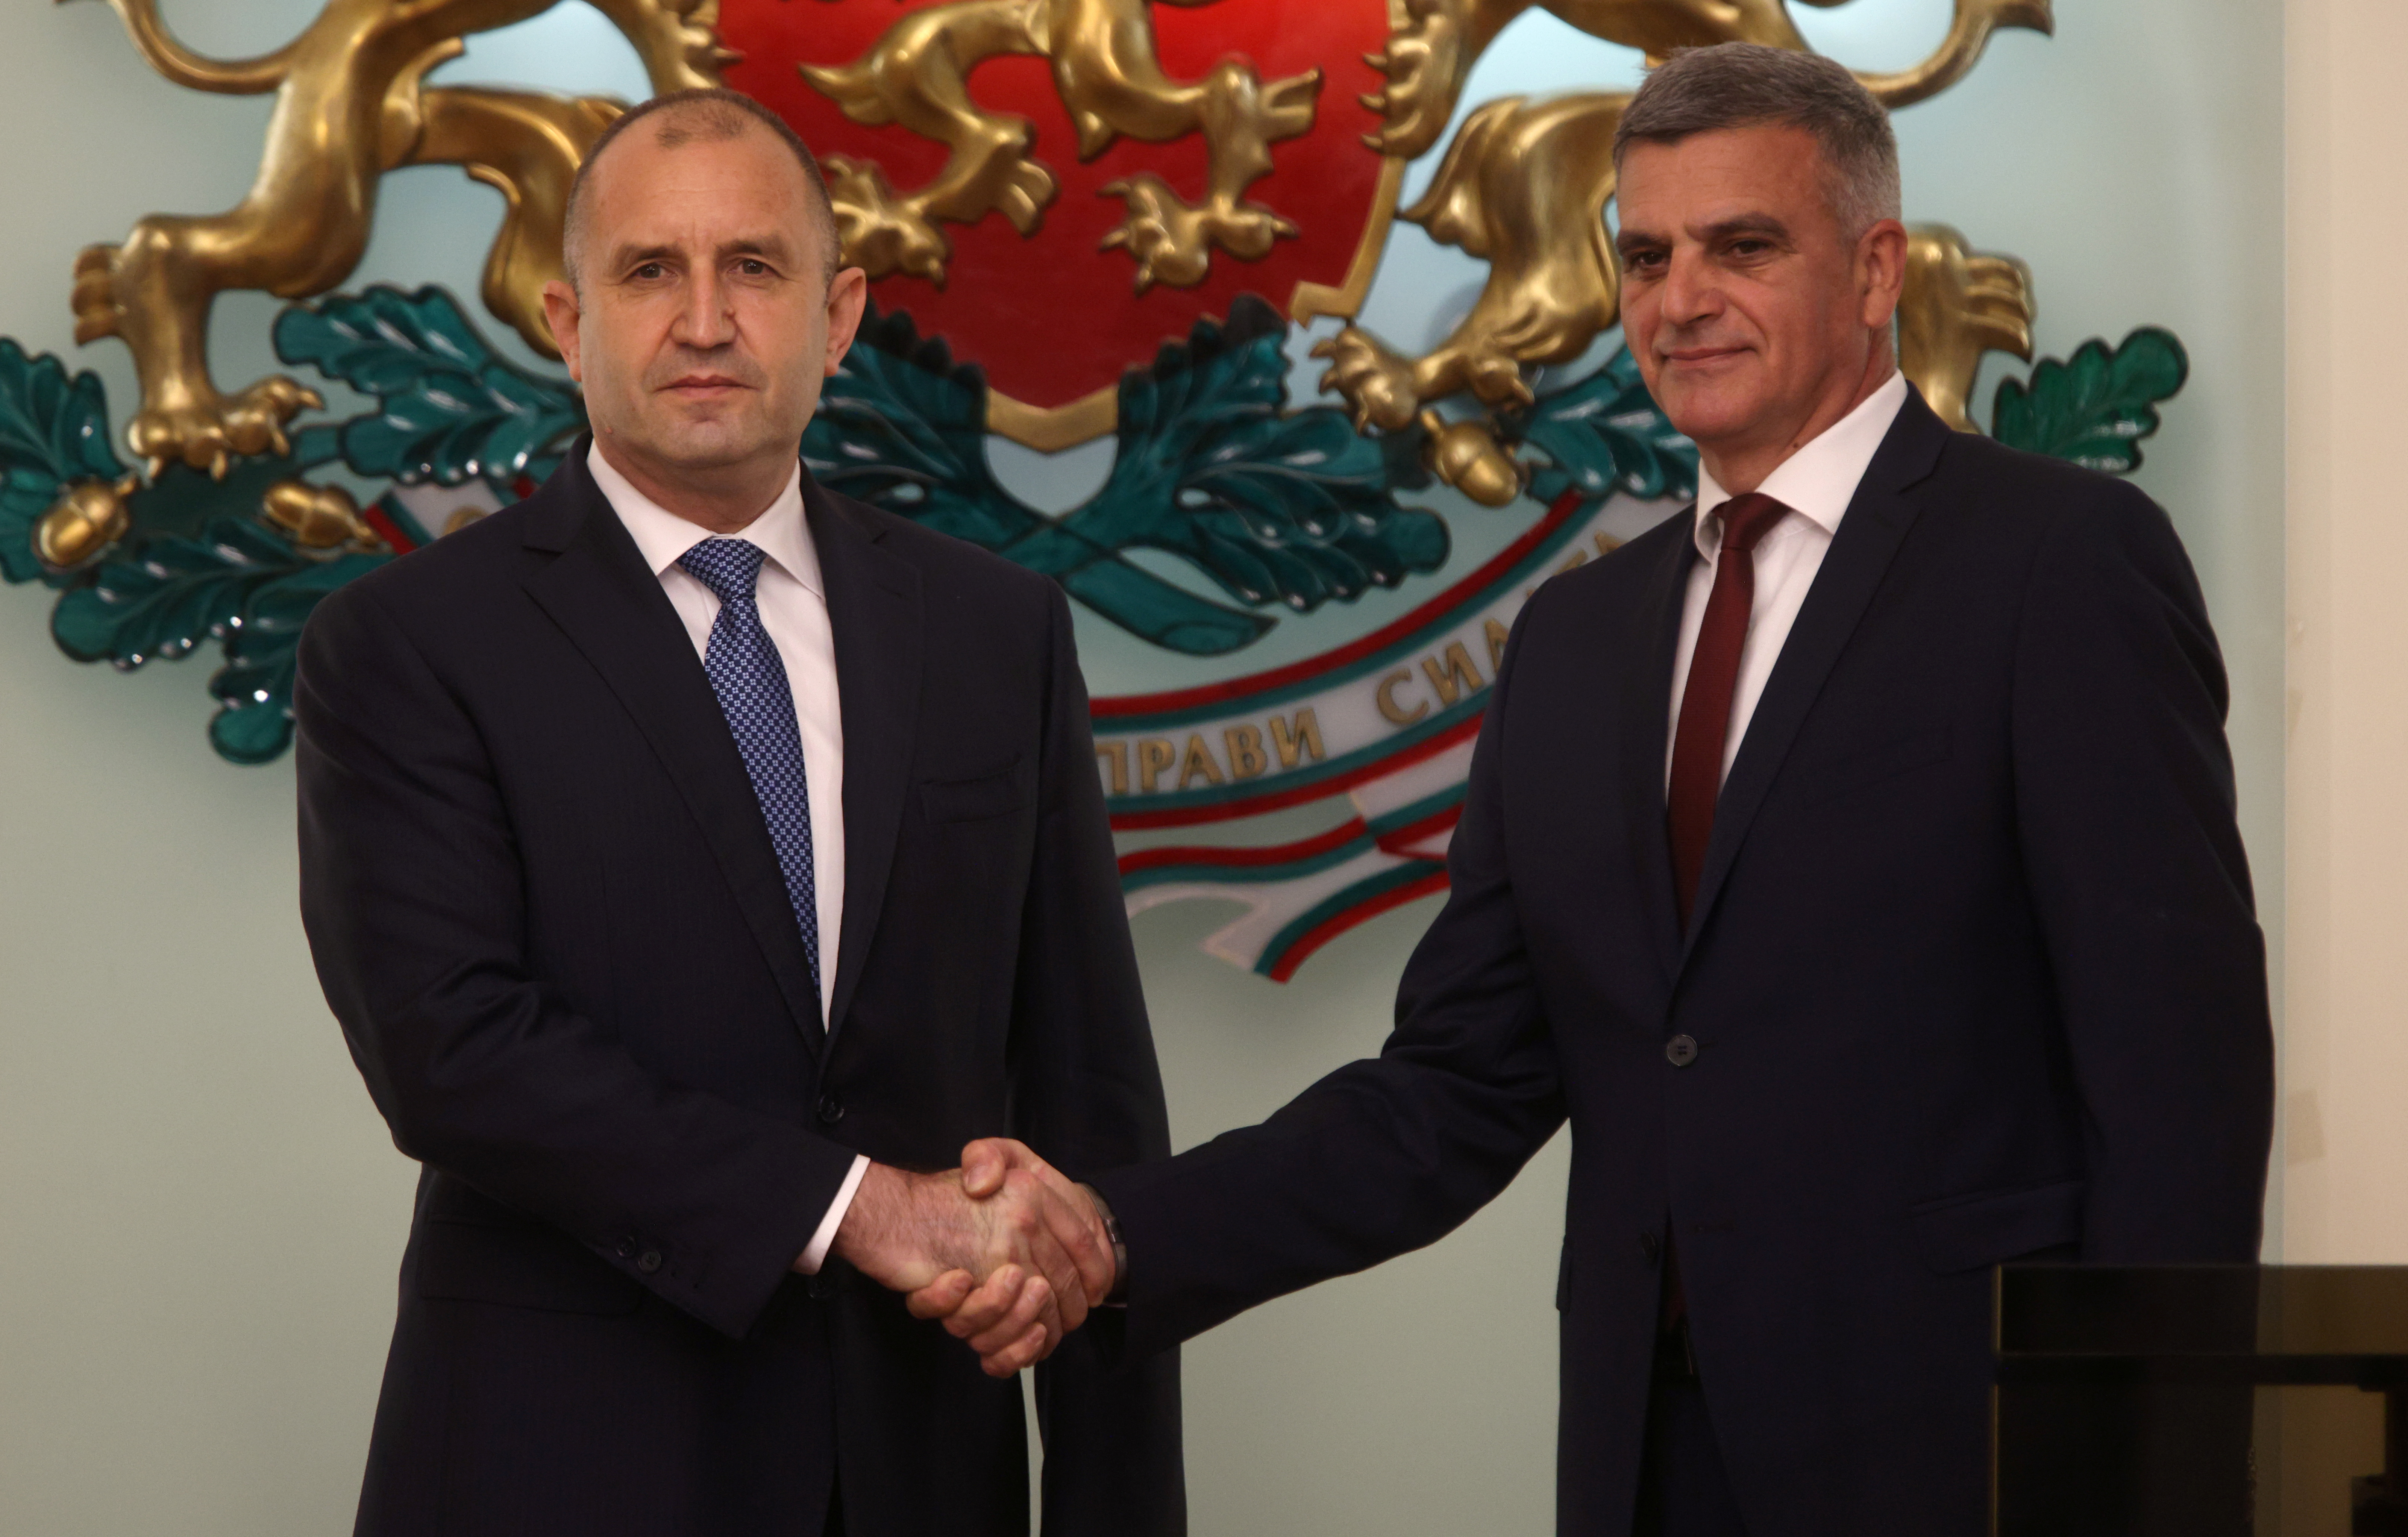 Newly appointed caretaker Prime Minister Stefan Yanev shakes hands with Bulgaria's President Rumen Radev during an official ceremony in Sofia, Bulgaria, May 12, 2021. REUTERS/Stoyan Nenov